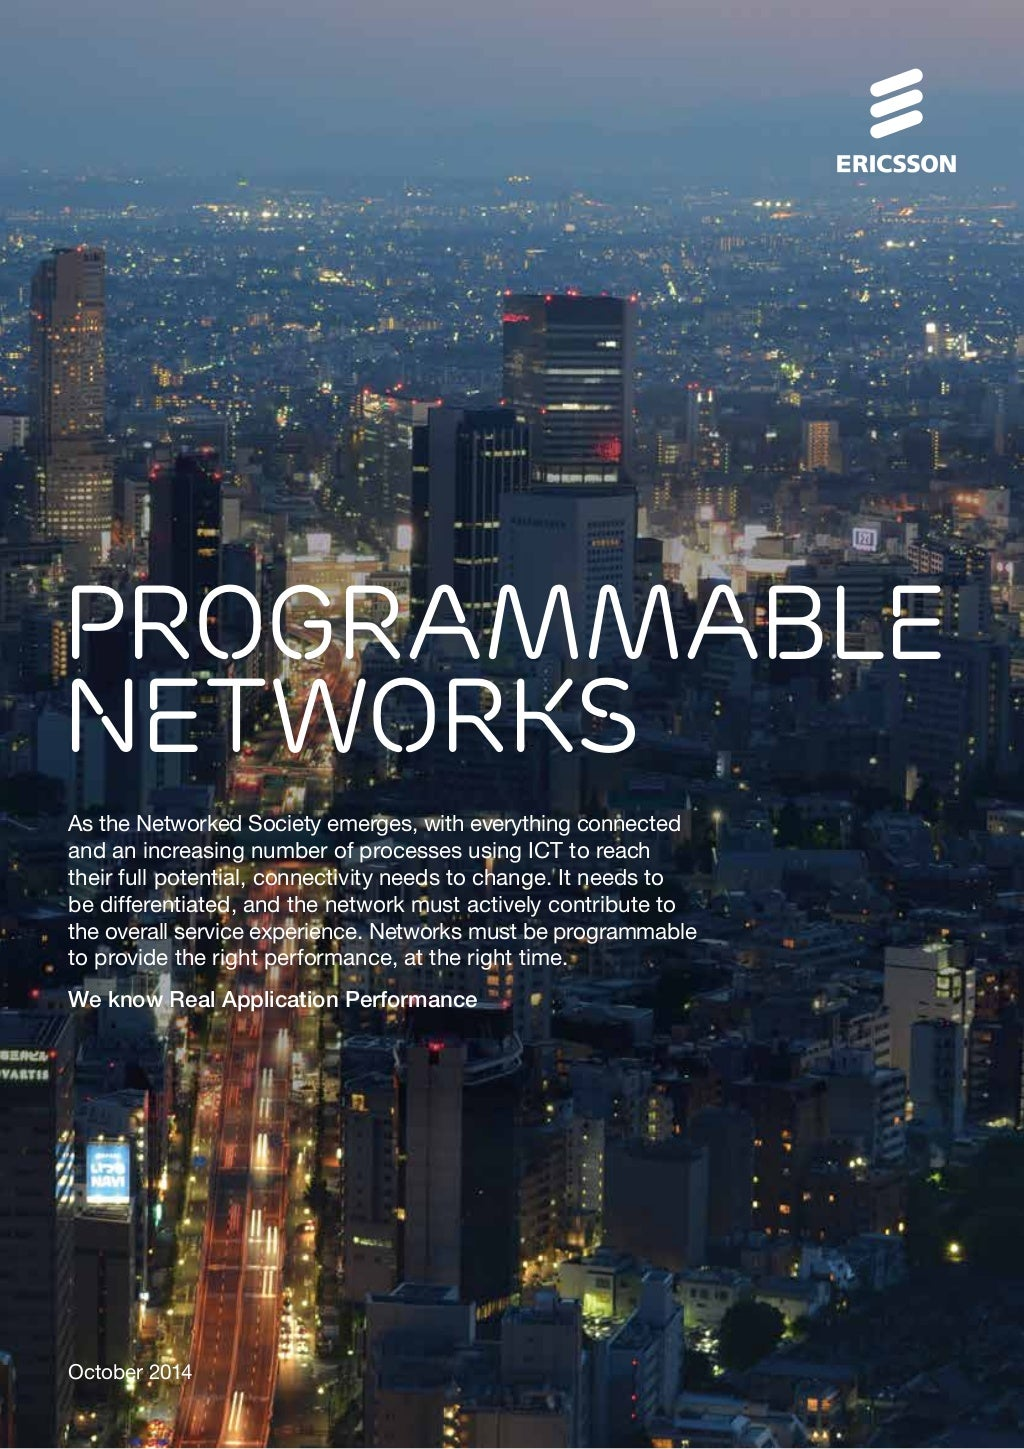 Programmable networks